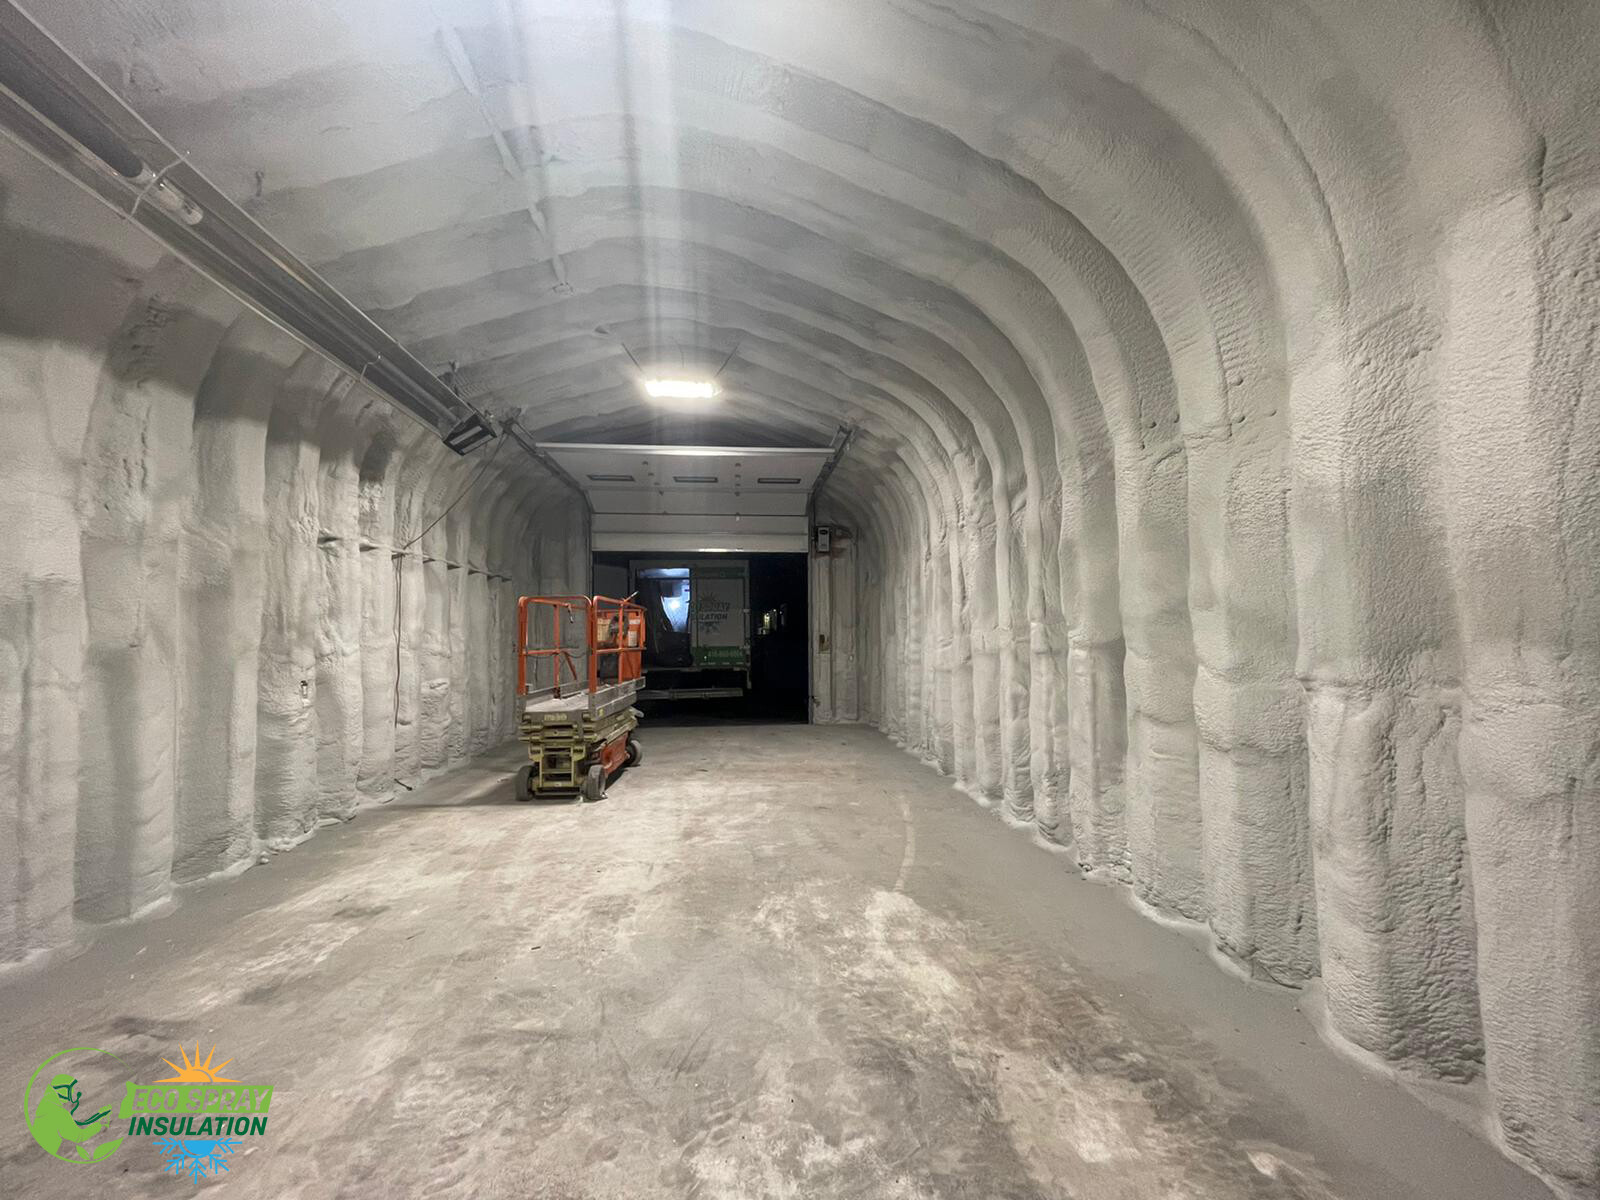 Commercial Spray Foam Insulation - Closed Cell